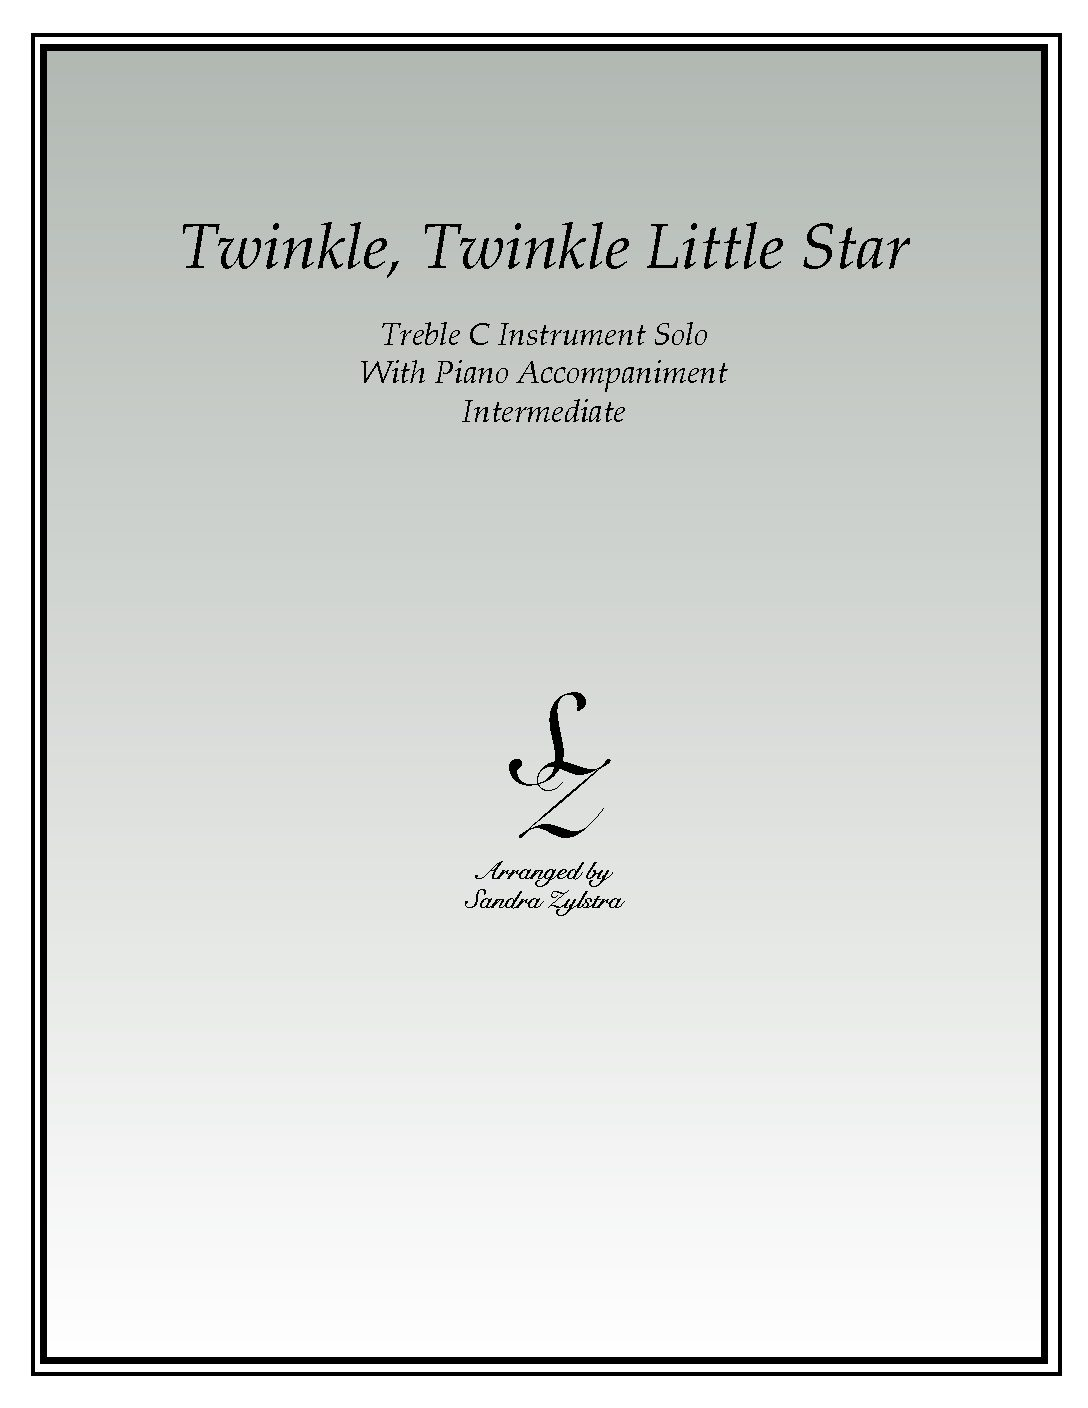 Twinkle, Twinkle Little Star -Treble C Instrument Solo